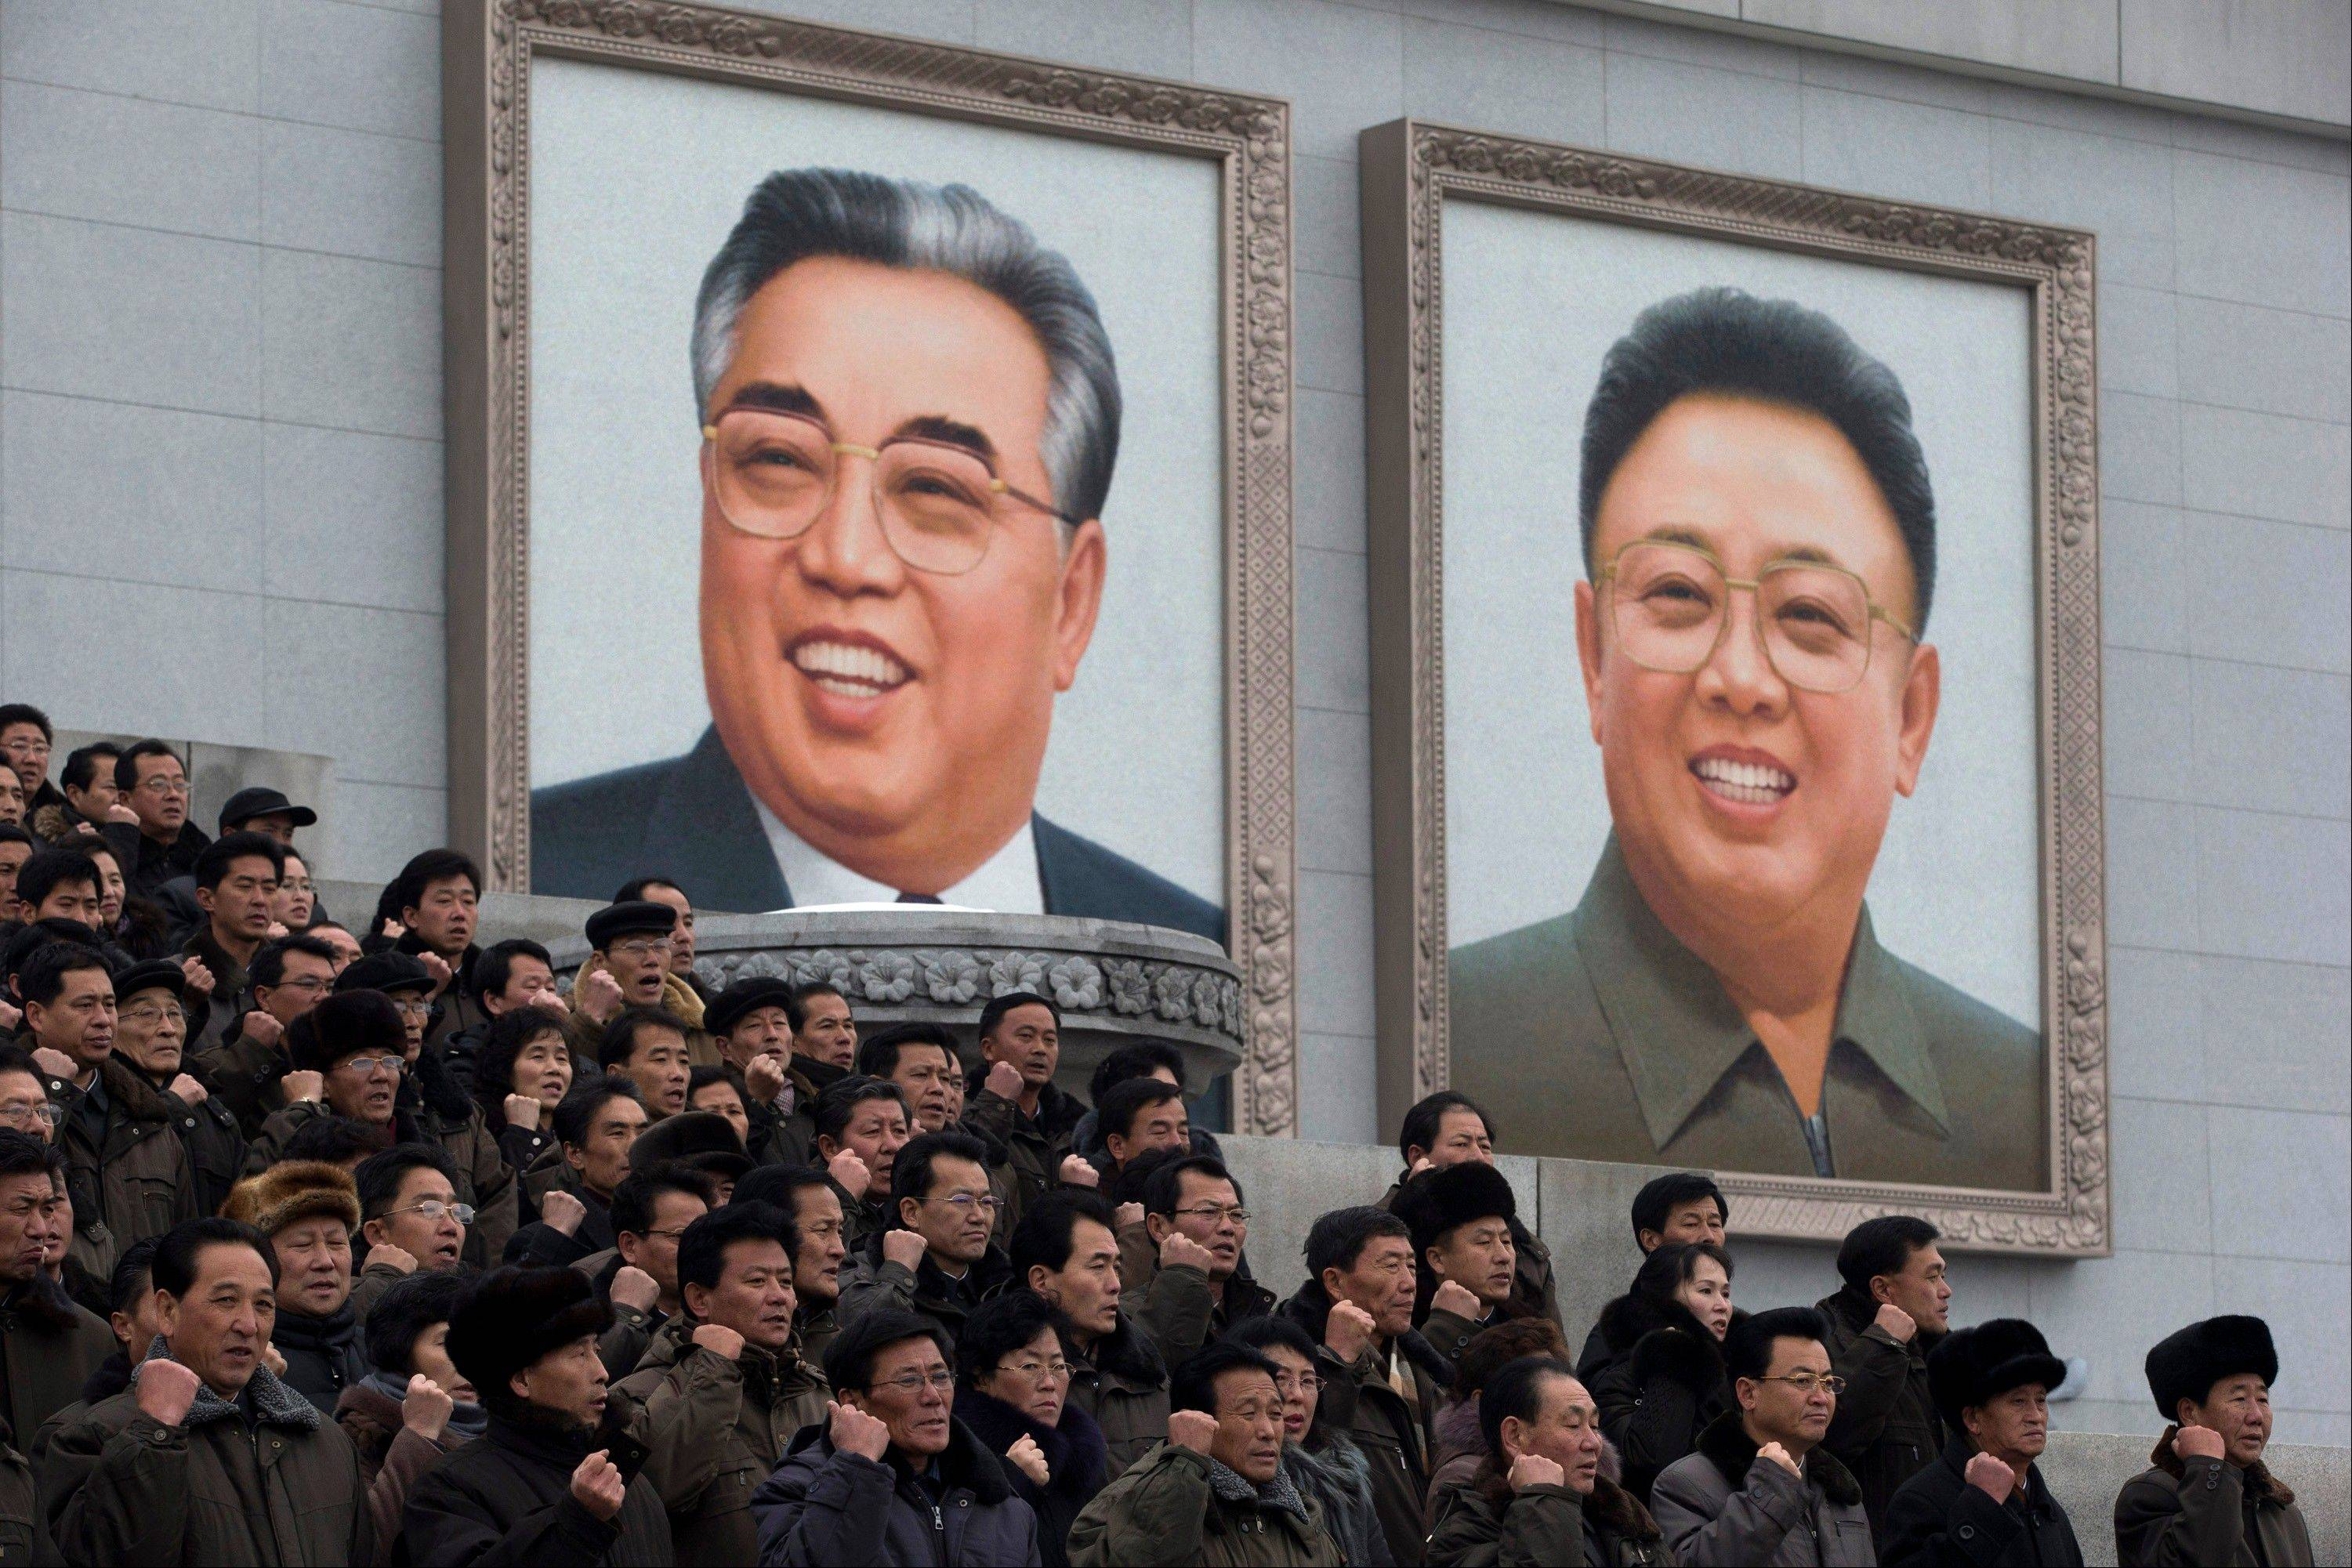 North Koreans chant slogans and gesture to show their determination near giant portraits of the late leaders Kim Il Sung, left, and Kim Jong Il during a mass rally organized to celebrate the success of a rocket launch that sent a satellite into space, on Kim Il Sung Square in Pyongyang, North Korea, Friday, Dec. 14, 2012.